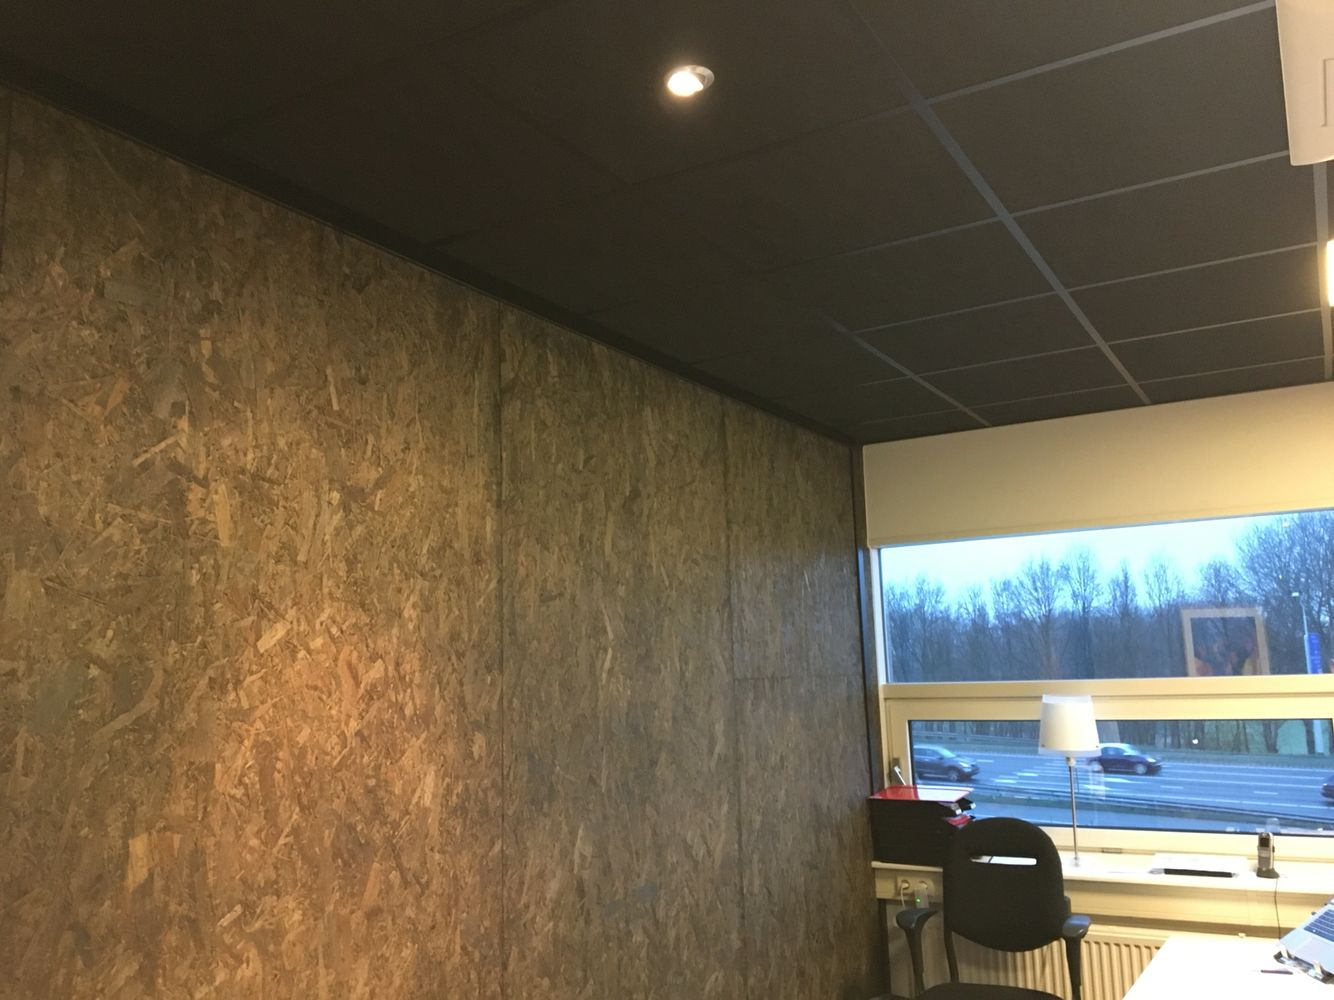 Kantoorinrichting Van Modelina : Osb black office kantoorinrichting